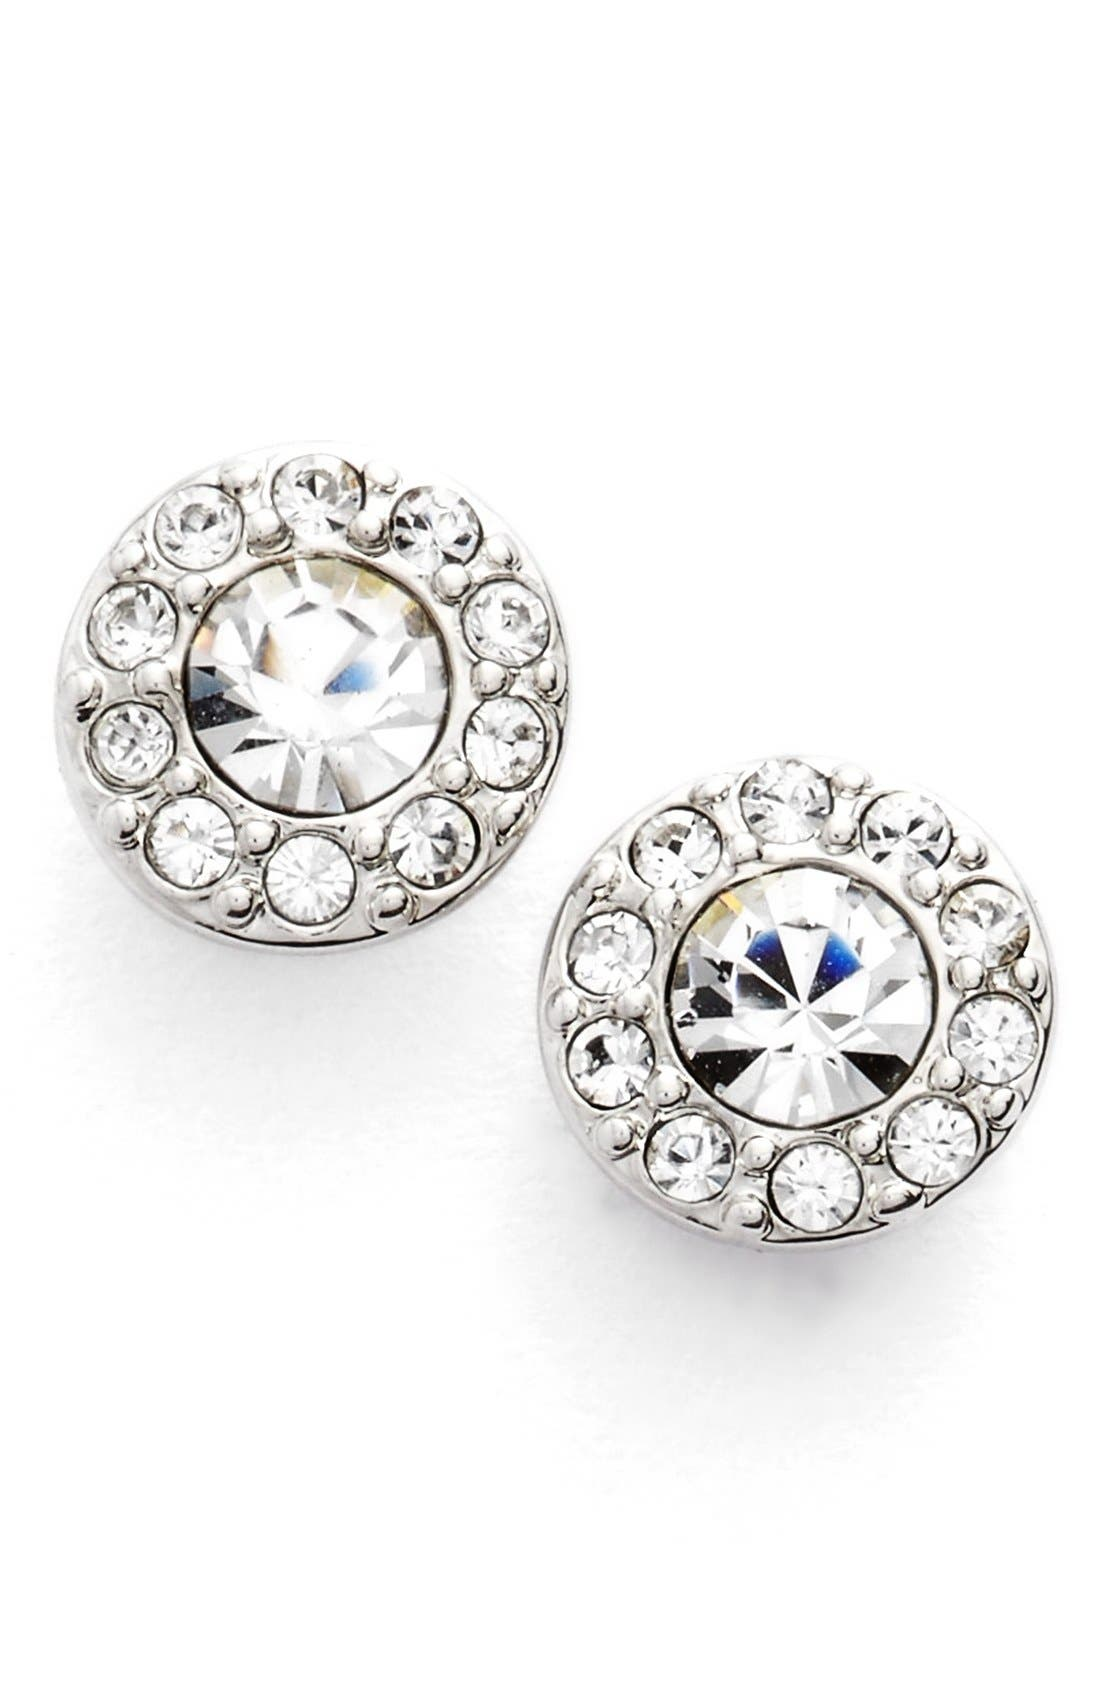 Main Image - Givenchy Small Crystal Stud Earrings